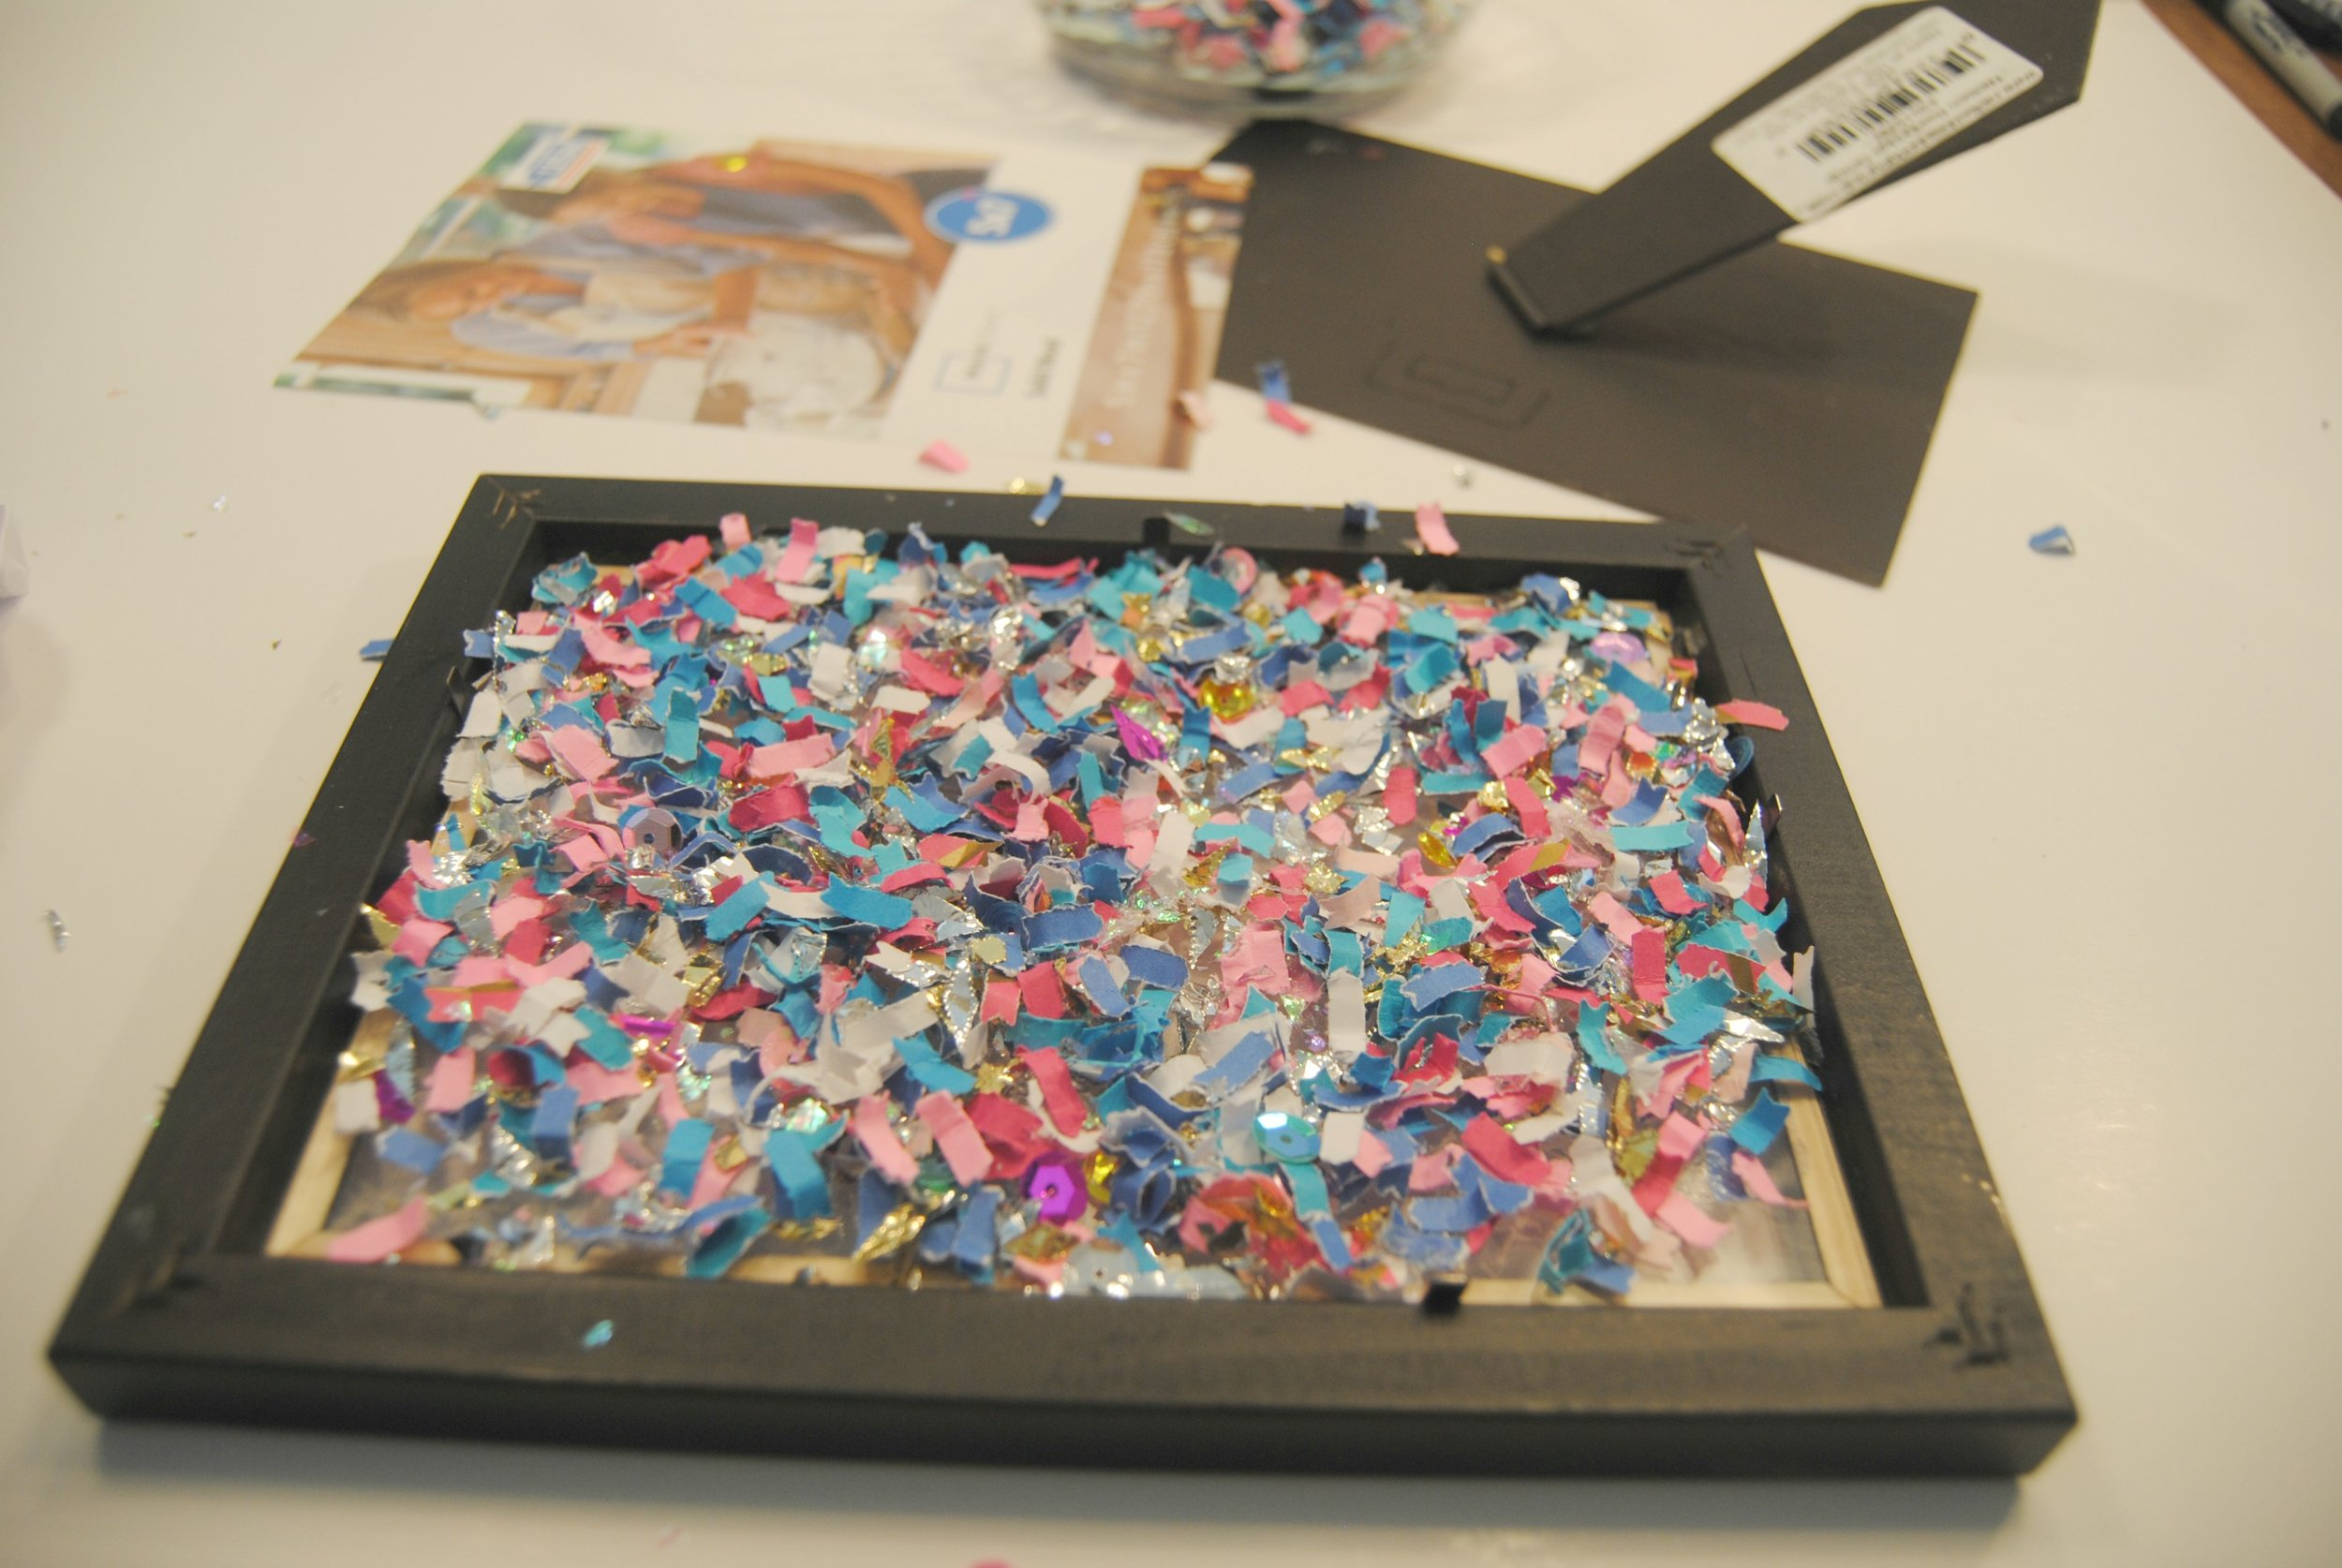 More Confetti In Your Life: The Confetti Bar Collectively Caitlin